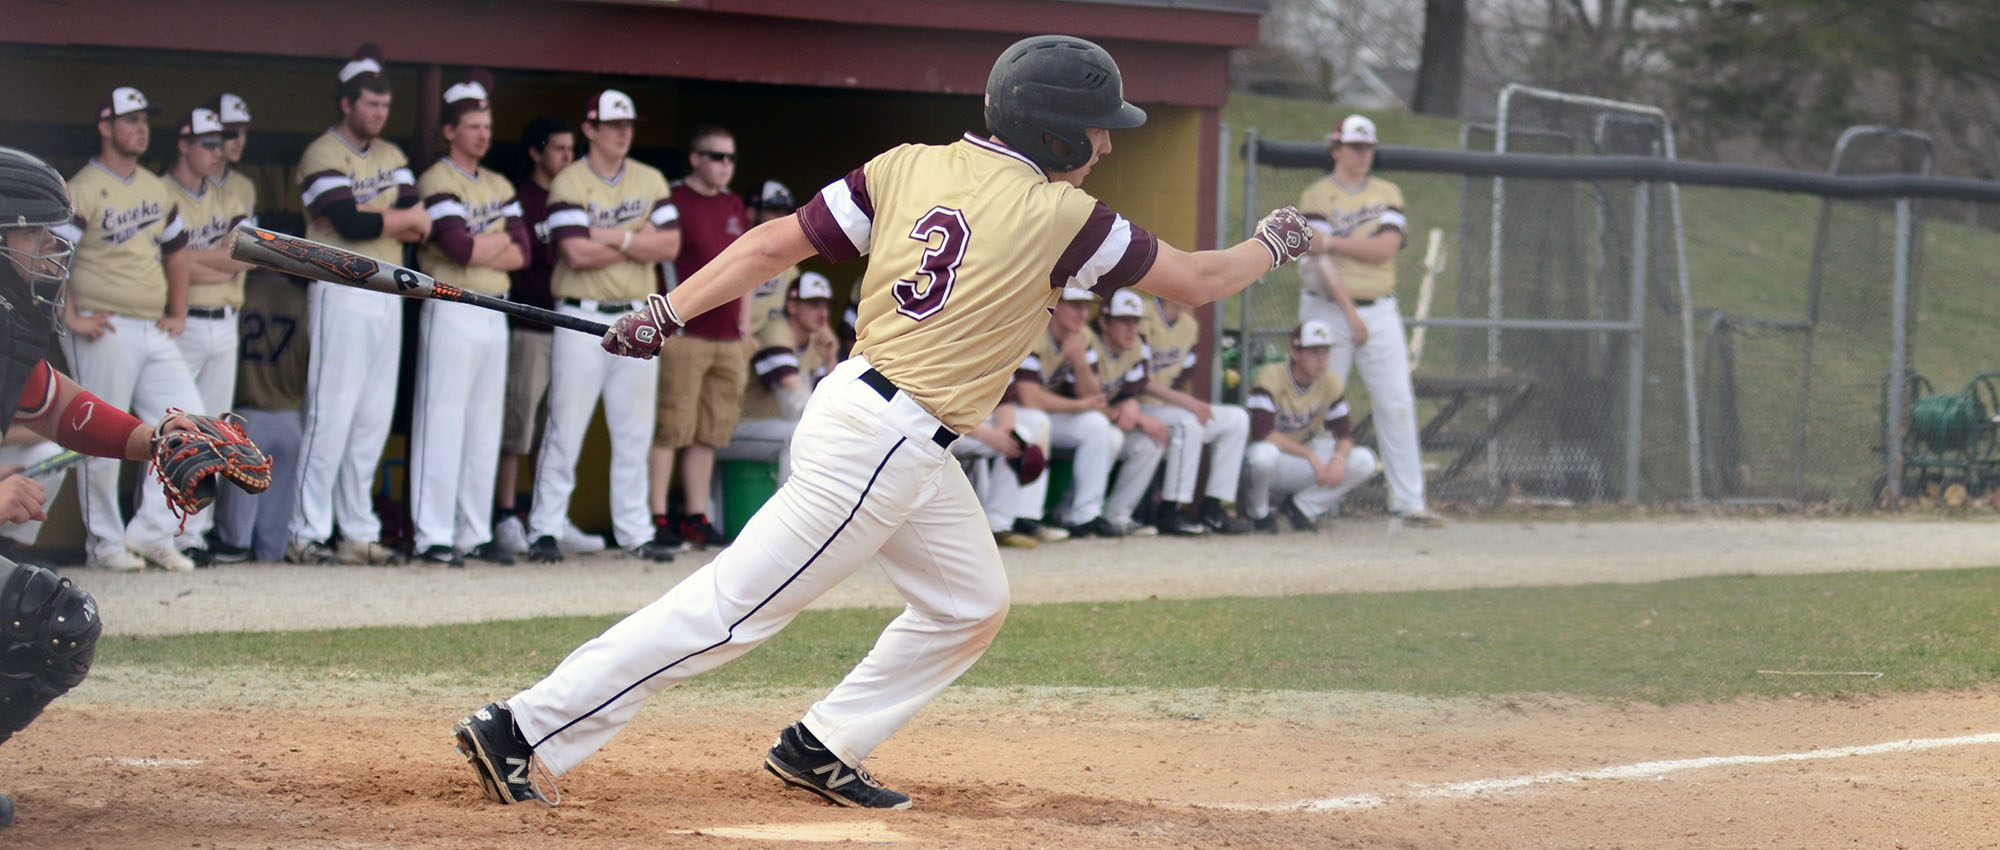 Eureka Blanked in West Division Series Finale at Webster, 6-0